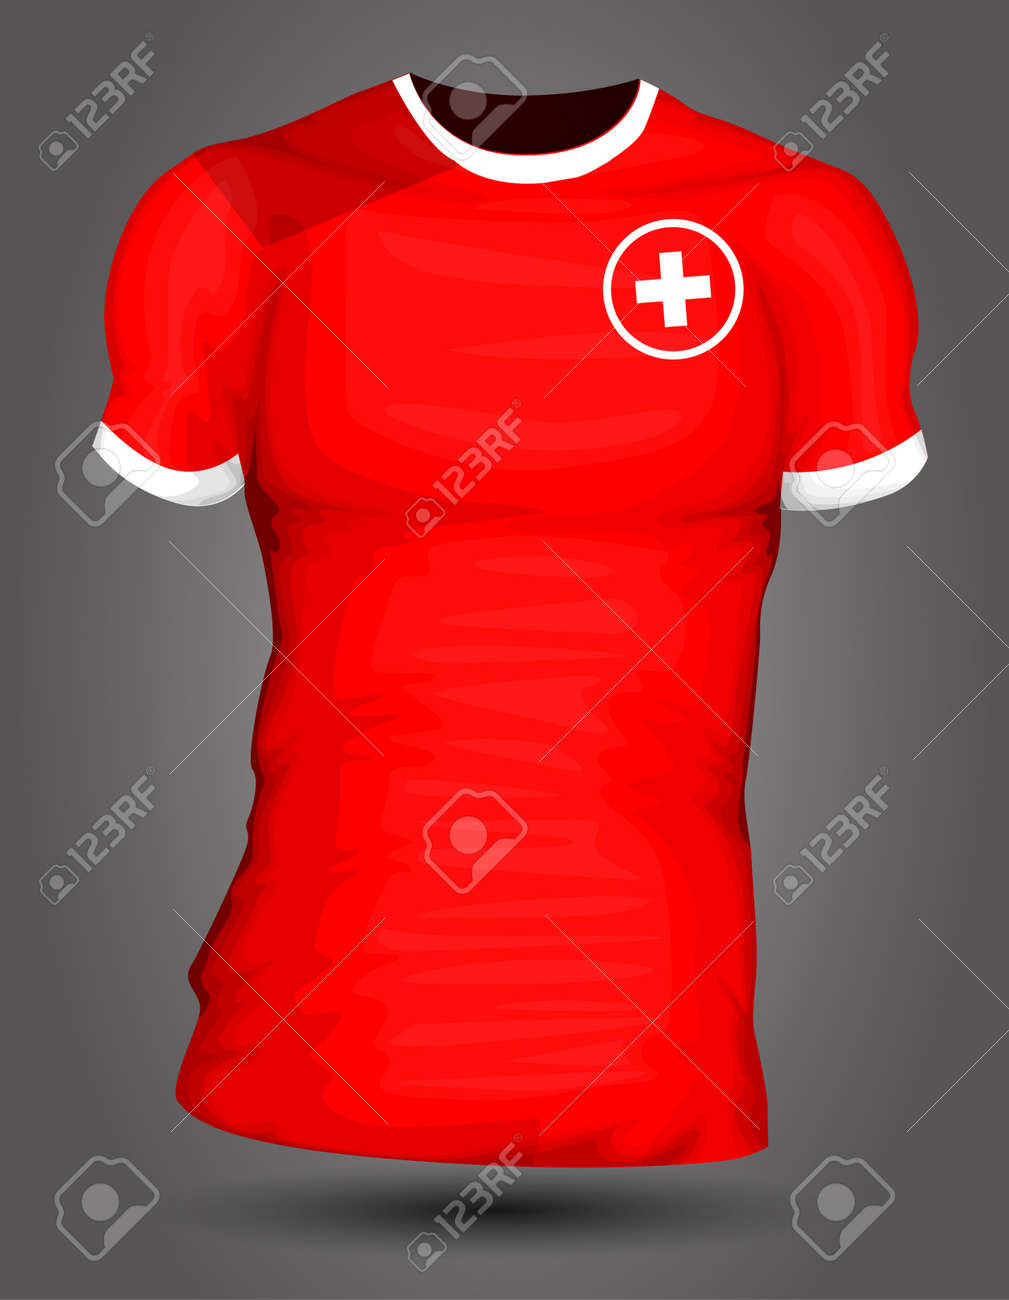 f1f106da3 Switzerland soccer jersey Stock Vector - 27320523